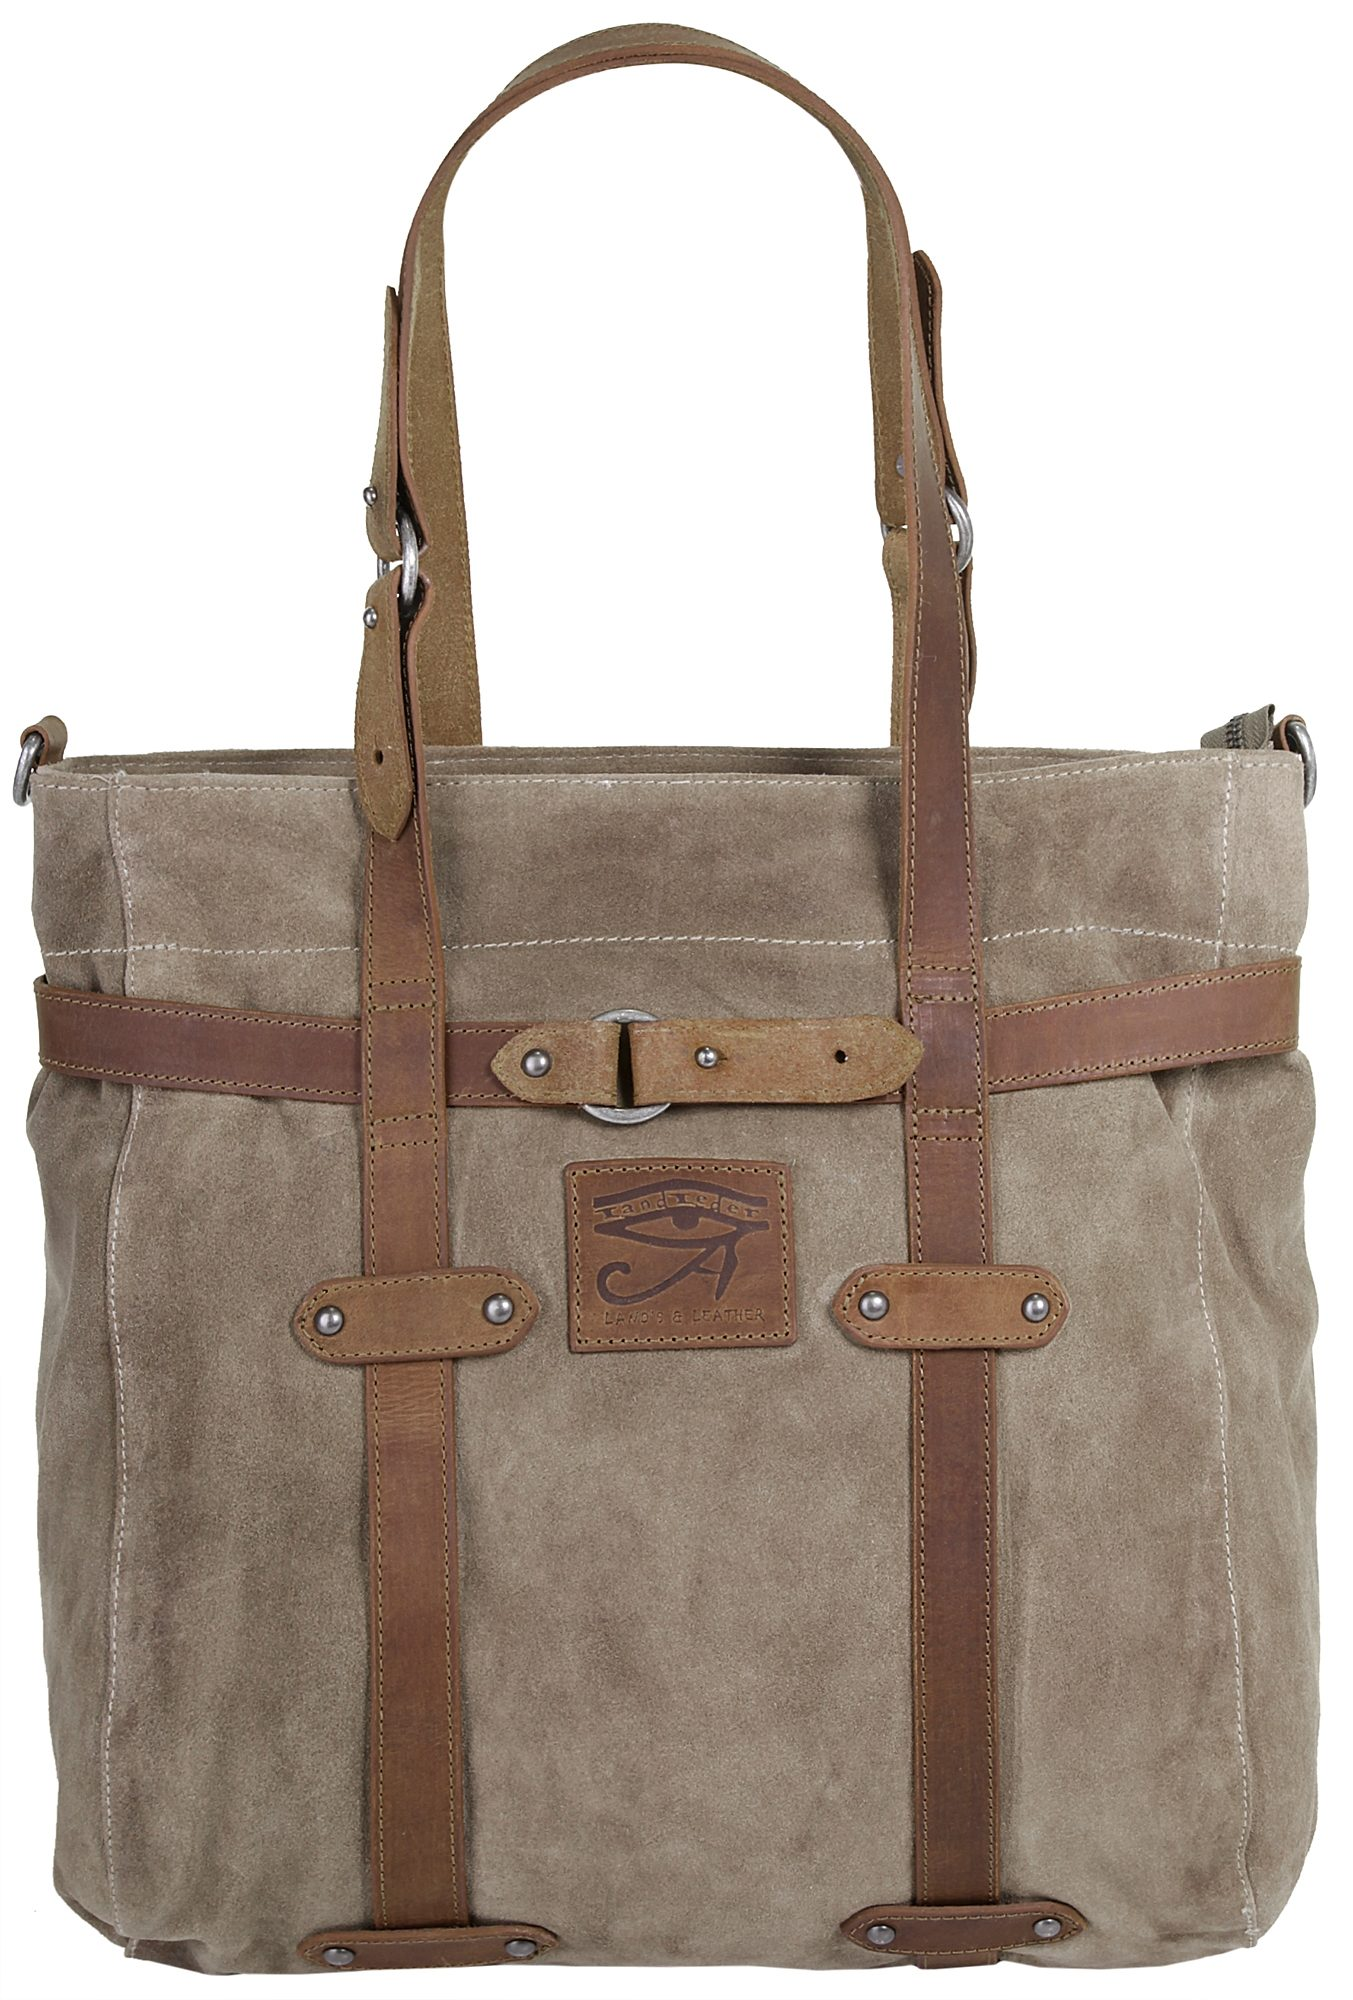 Landleder Leder Shopper »Legend of Leather«